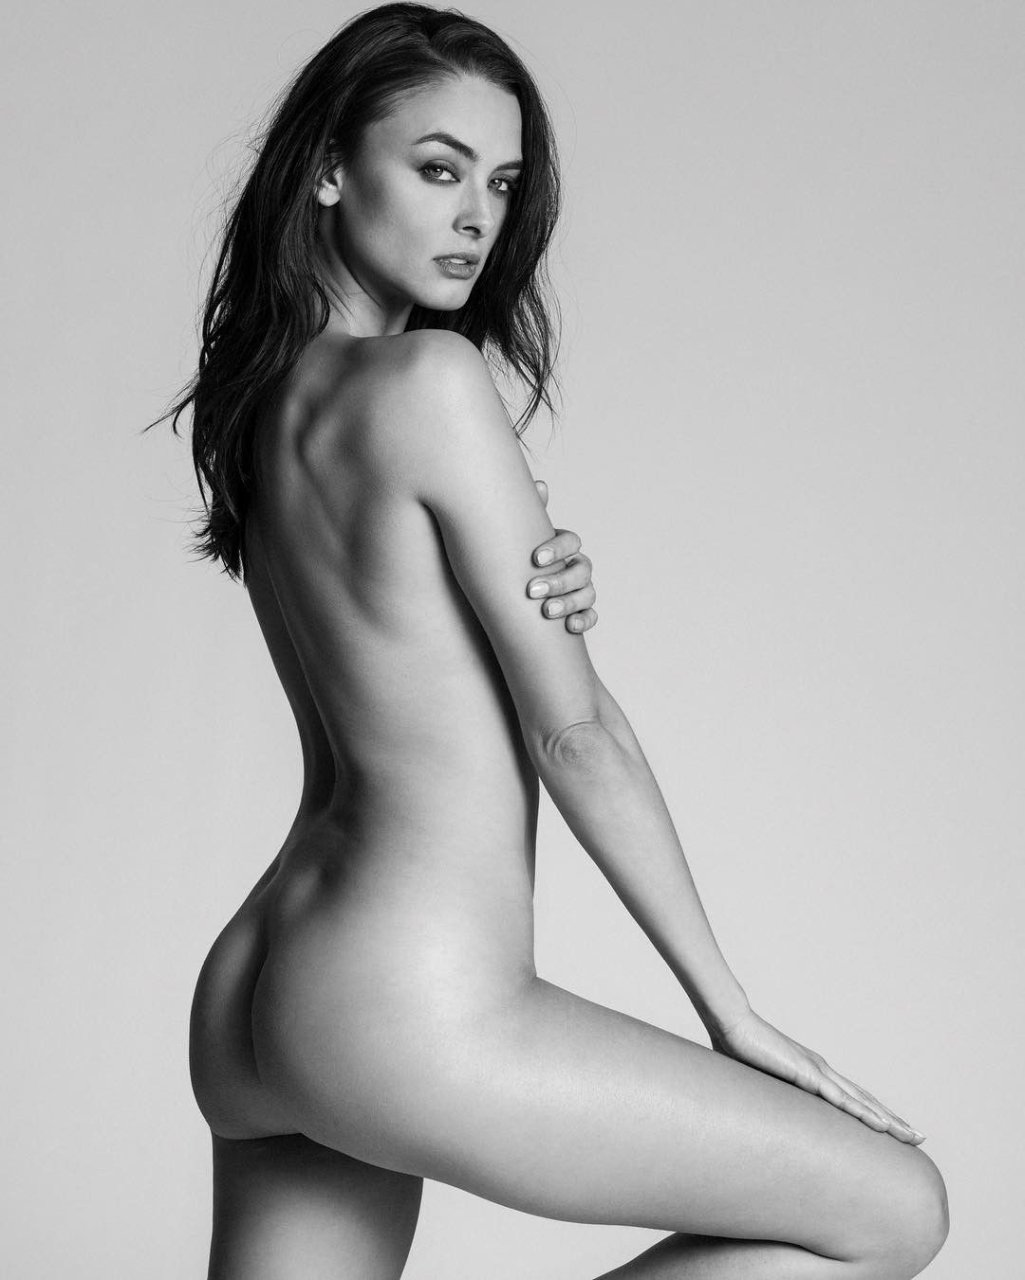 Irina shayk sexy photos,NSFW Odette Annable Erotic videos Chrissy Teigen Topless pics. 2018-2019 celebrityes photos leaks!,Bella hadid sexy 20